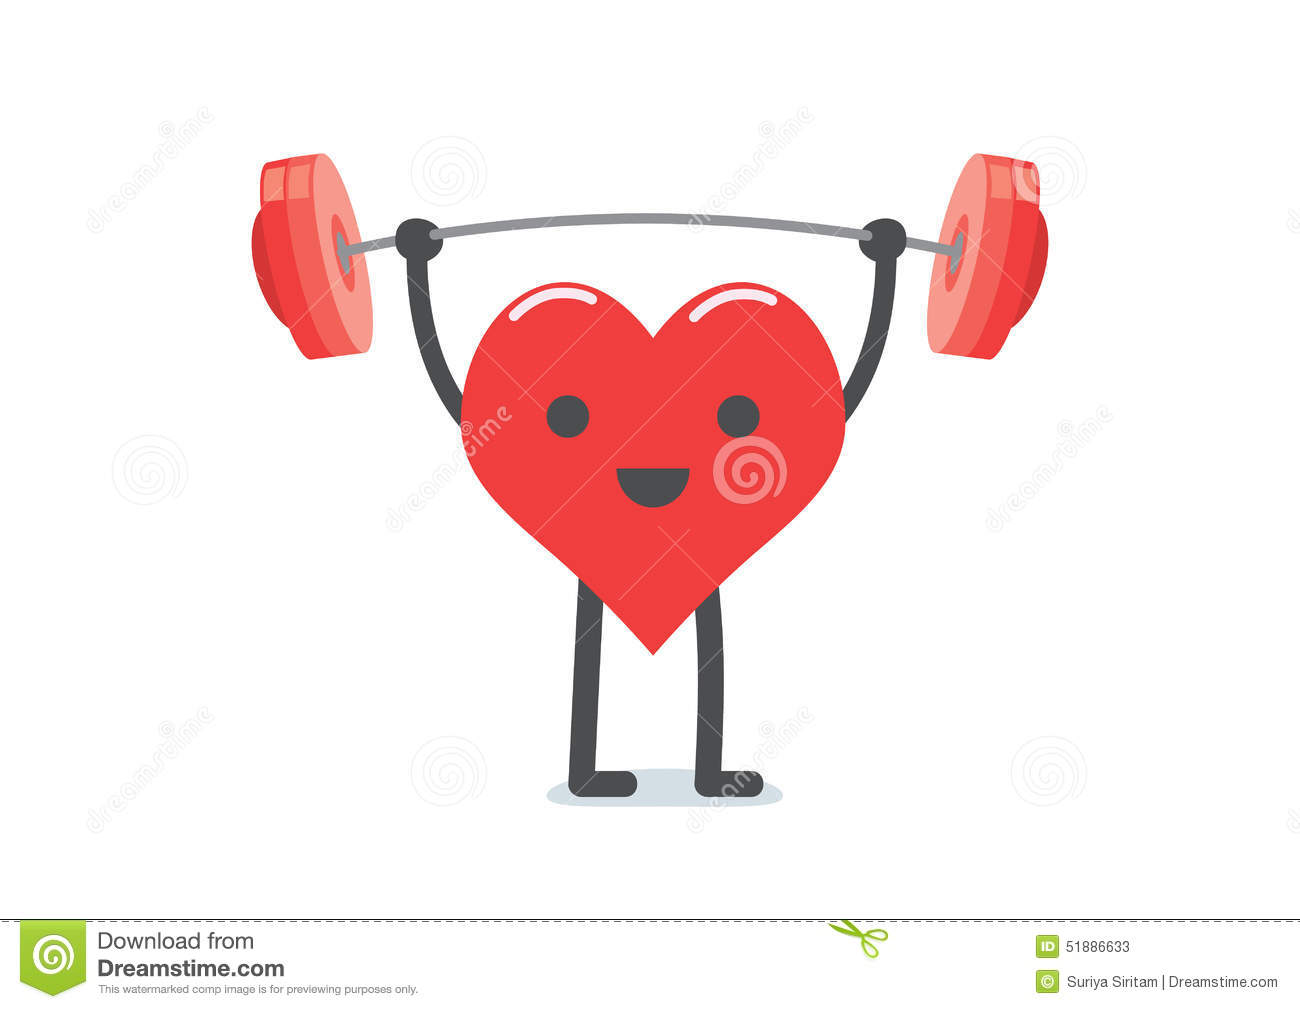 Strong Heart Weight Lifting Stock Vector - Image: 51886633